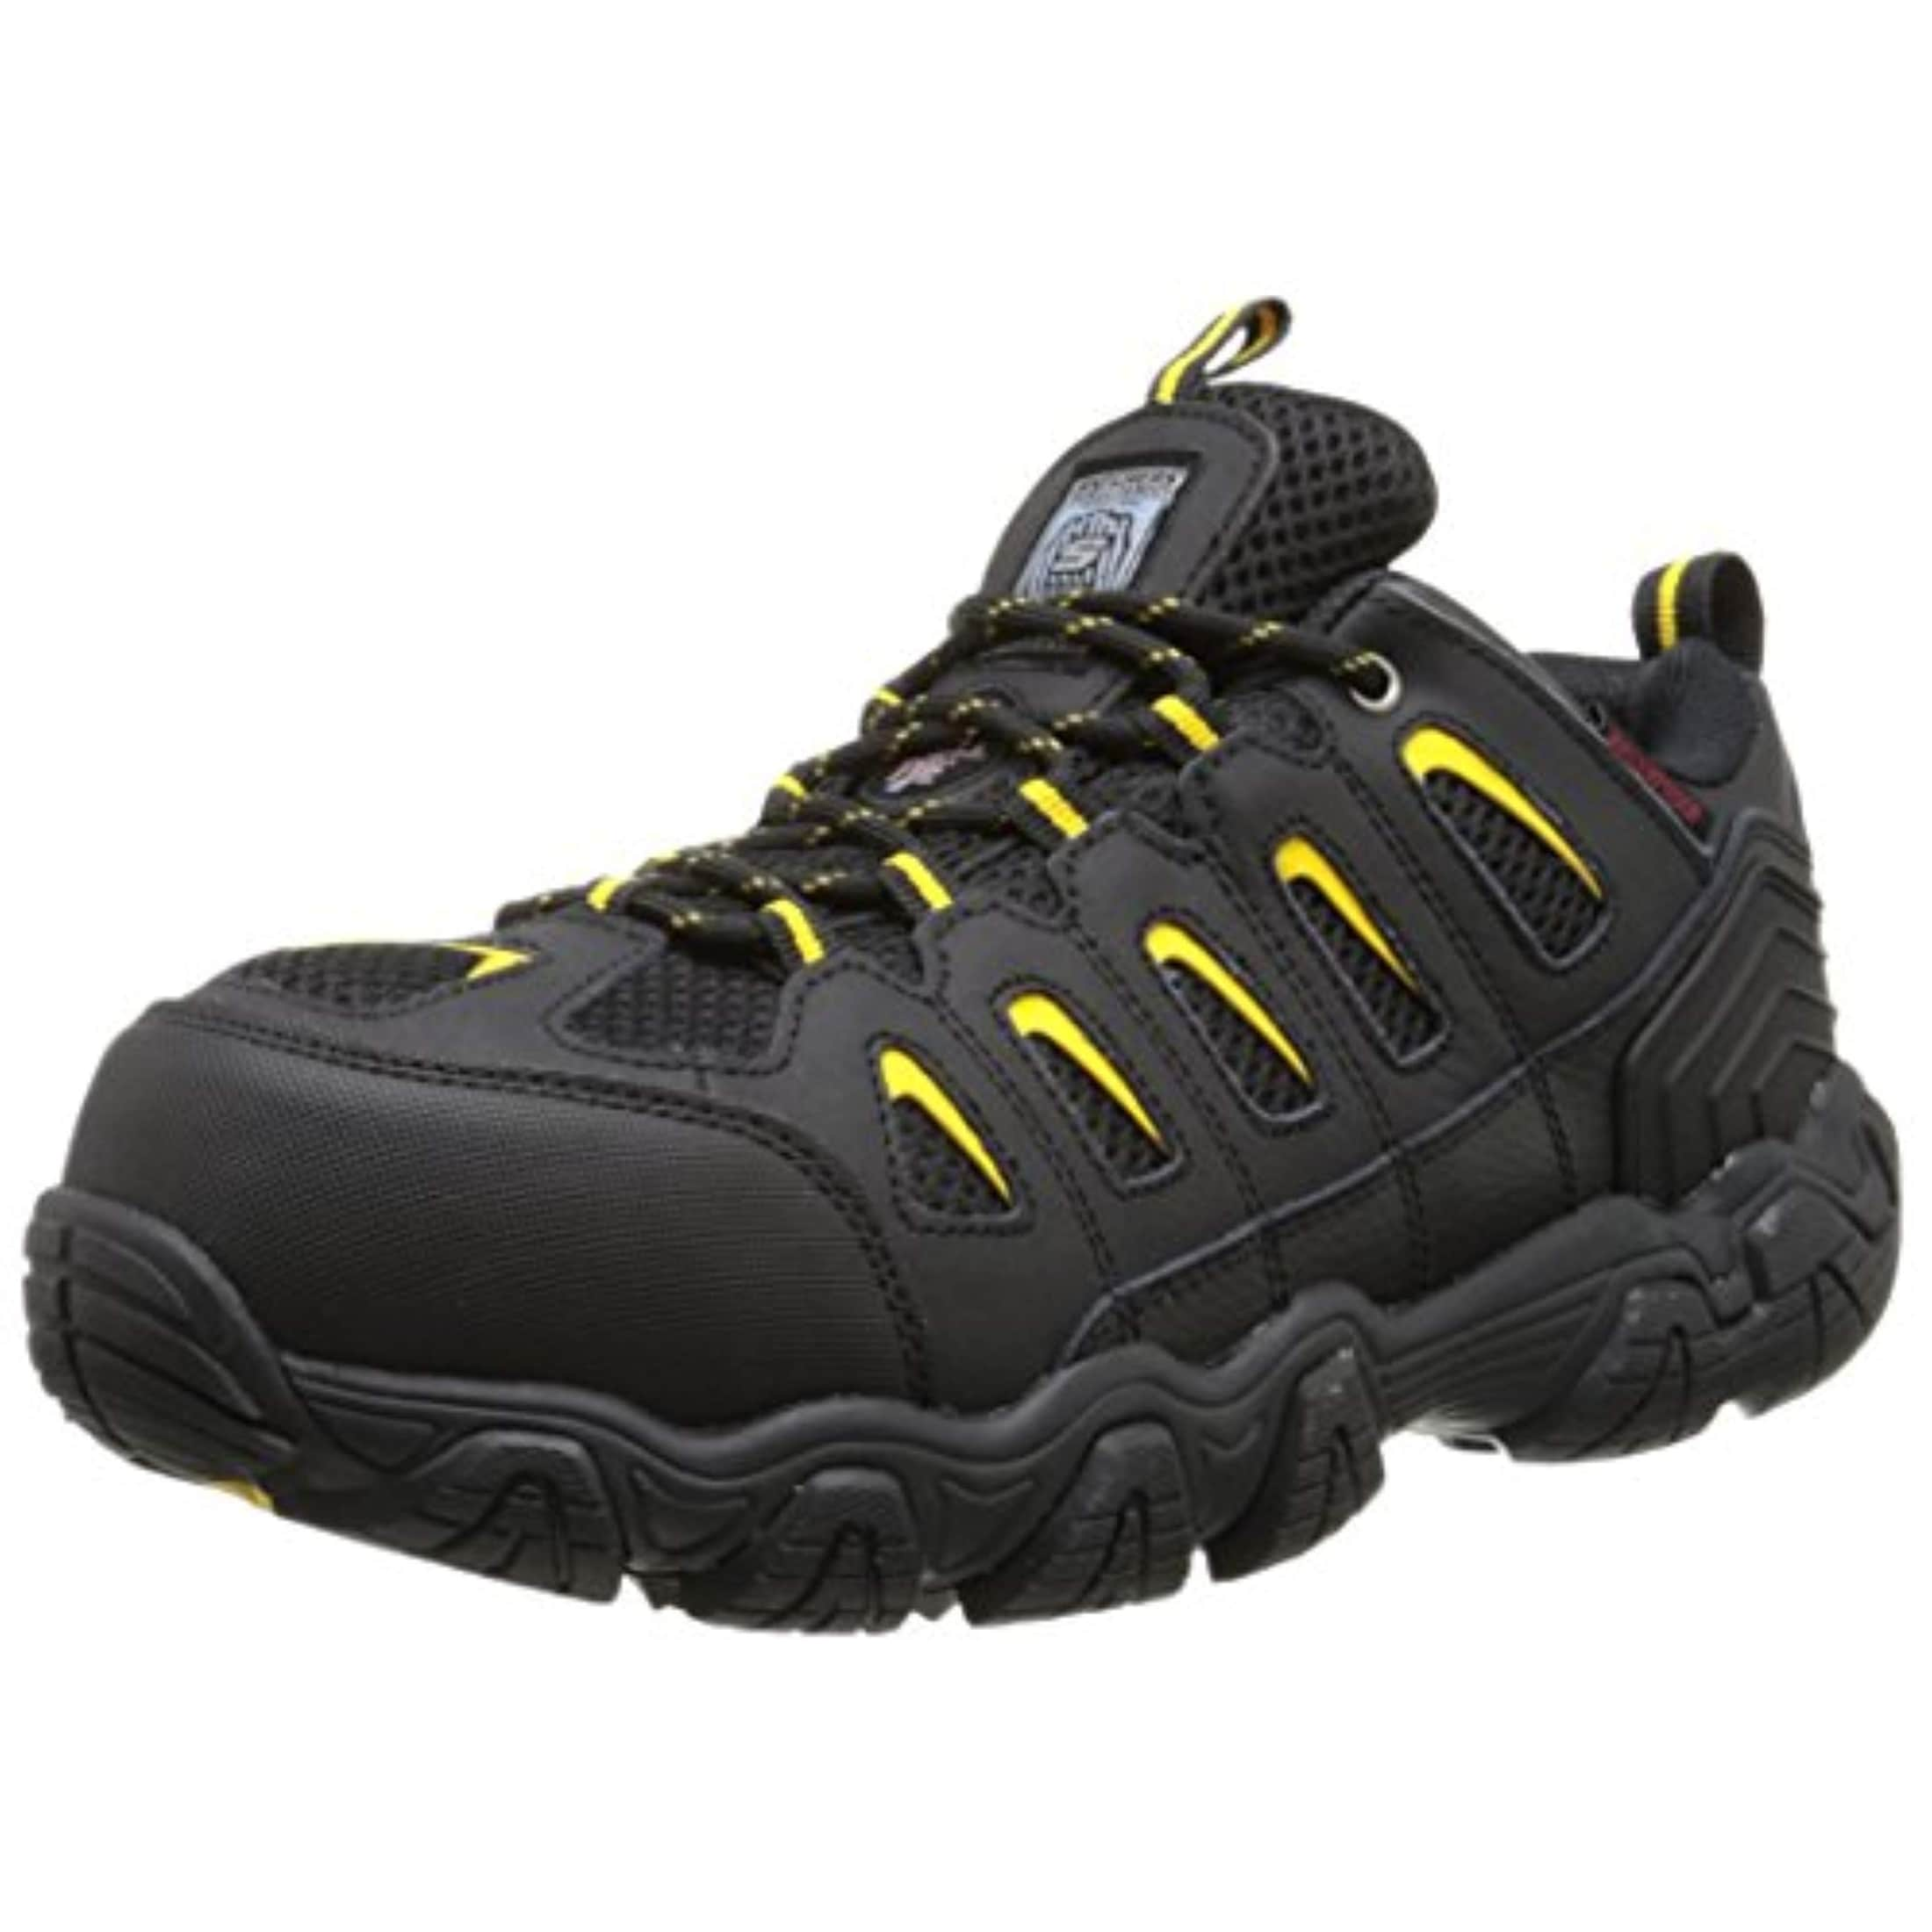 2d66b967528 Hiking Men's Shoes | Find Great Shoes Deals Shopping at Overstock